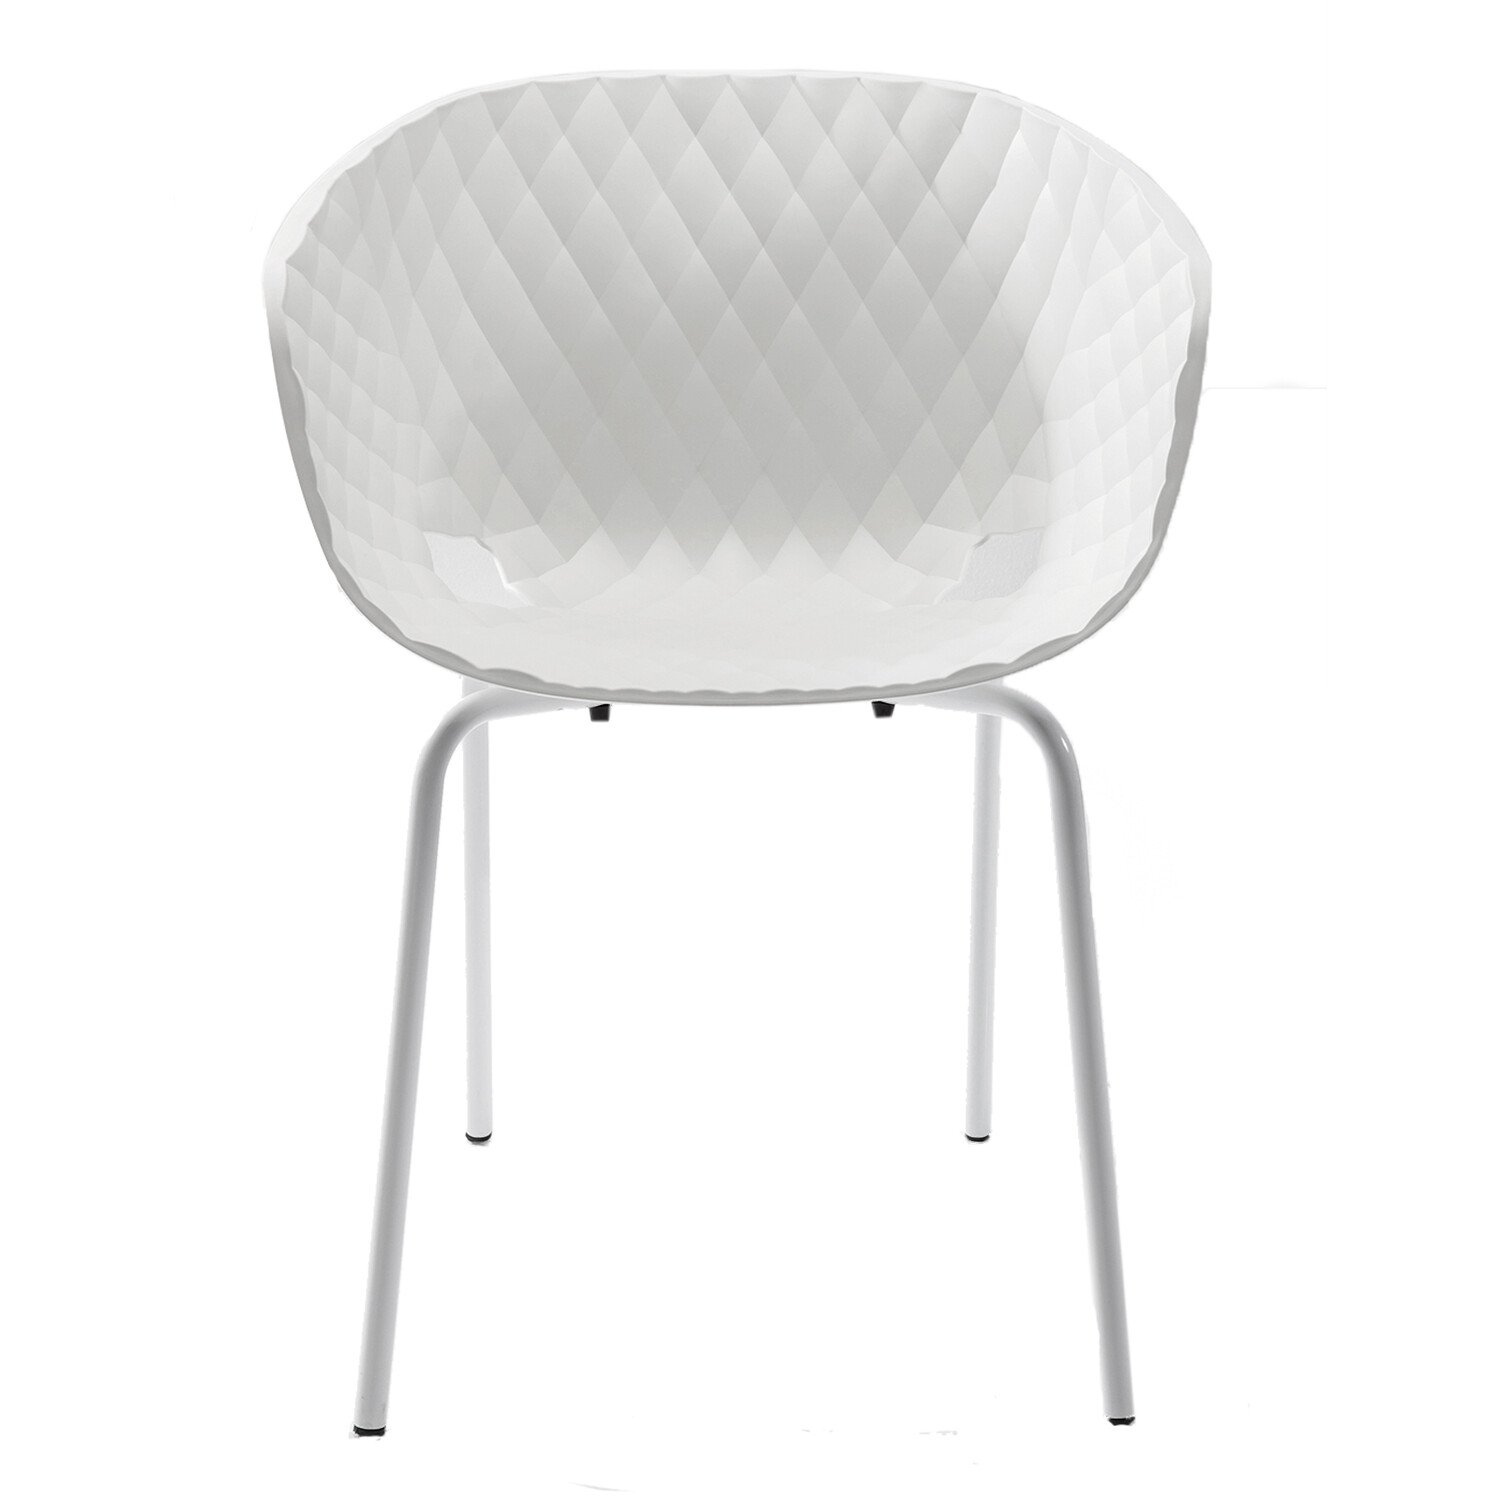 Kare Design Eetkamerstoel Radar Bubble Wit 80 x 59 x 55